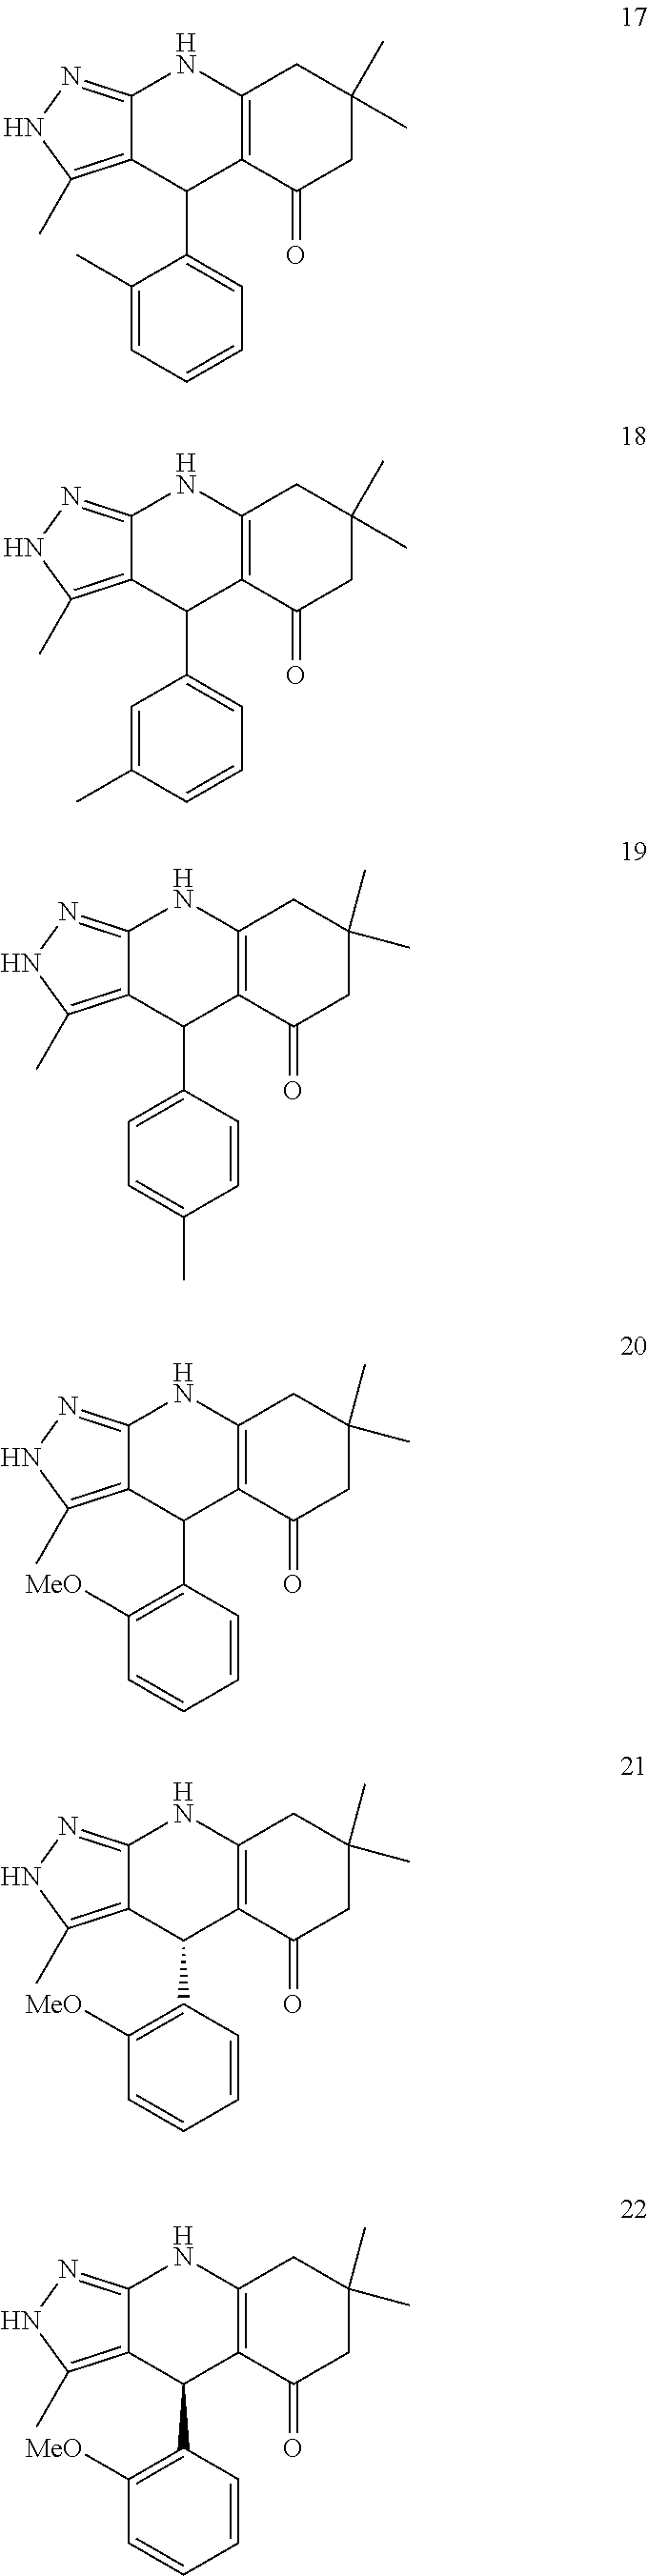 Us9096594b2 Kinase Inhibitors And Methods Of Use Thereof Google Rsk2 Switch Wiring Diagram Figure Us09096594 20150804 C00037